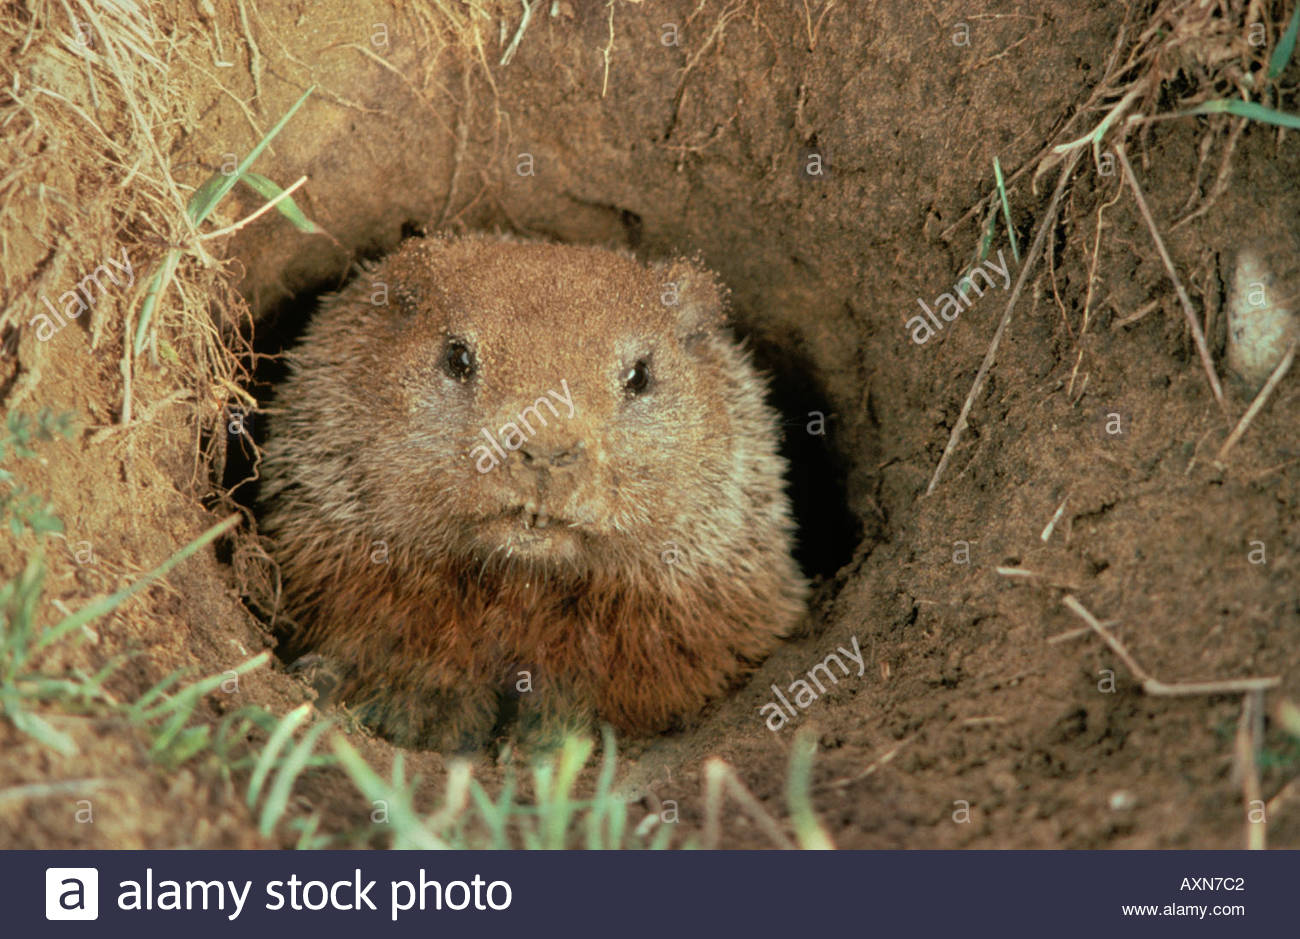 Woodchuck or Marmota monax exiting burrow in farm field in Ontario Canada - Stock Image